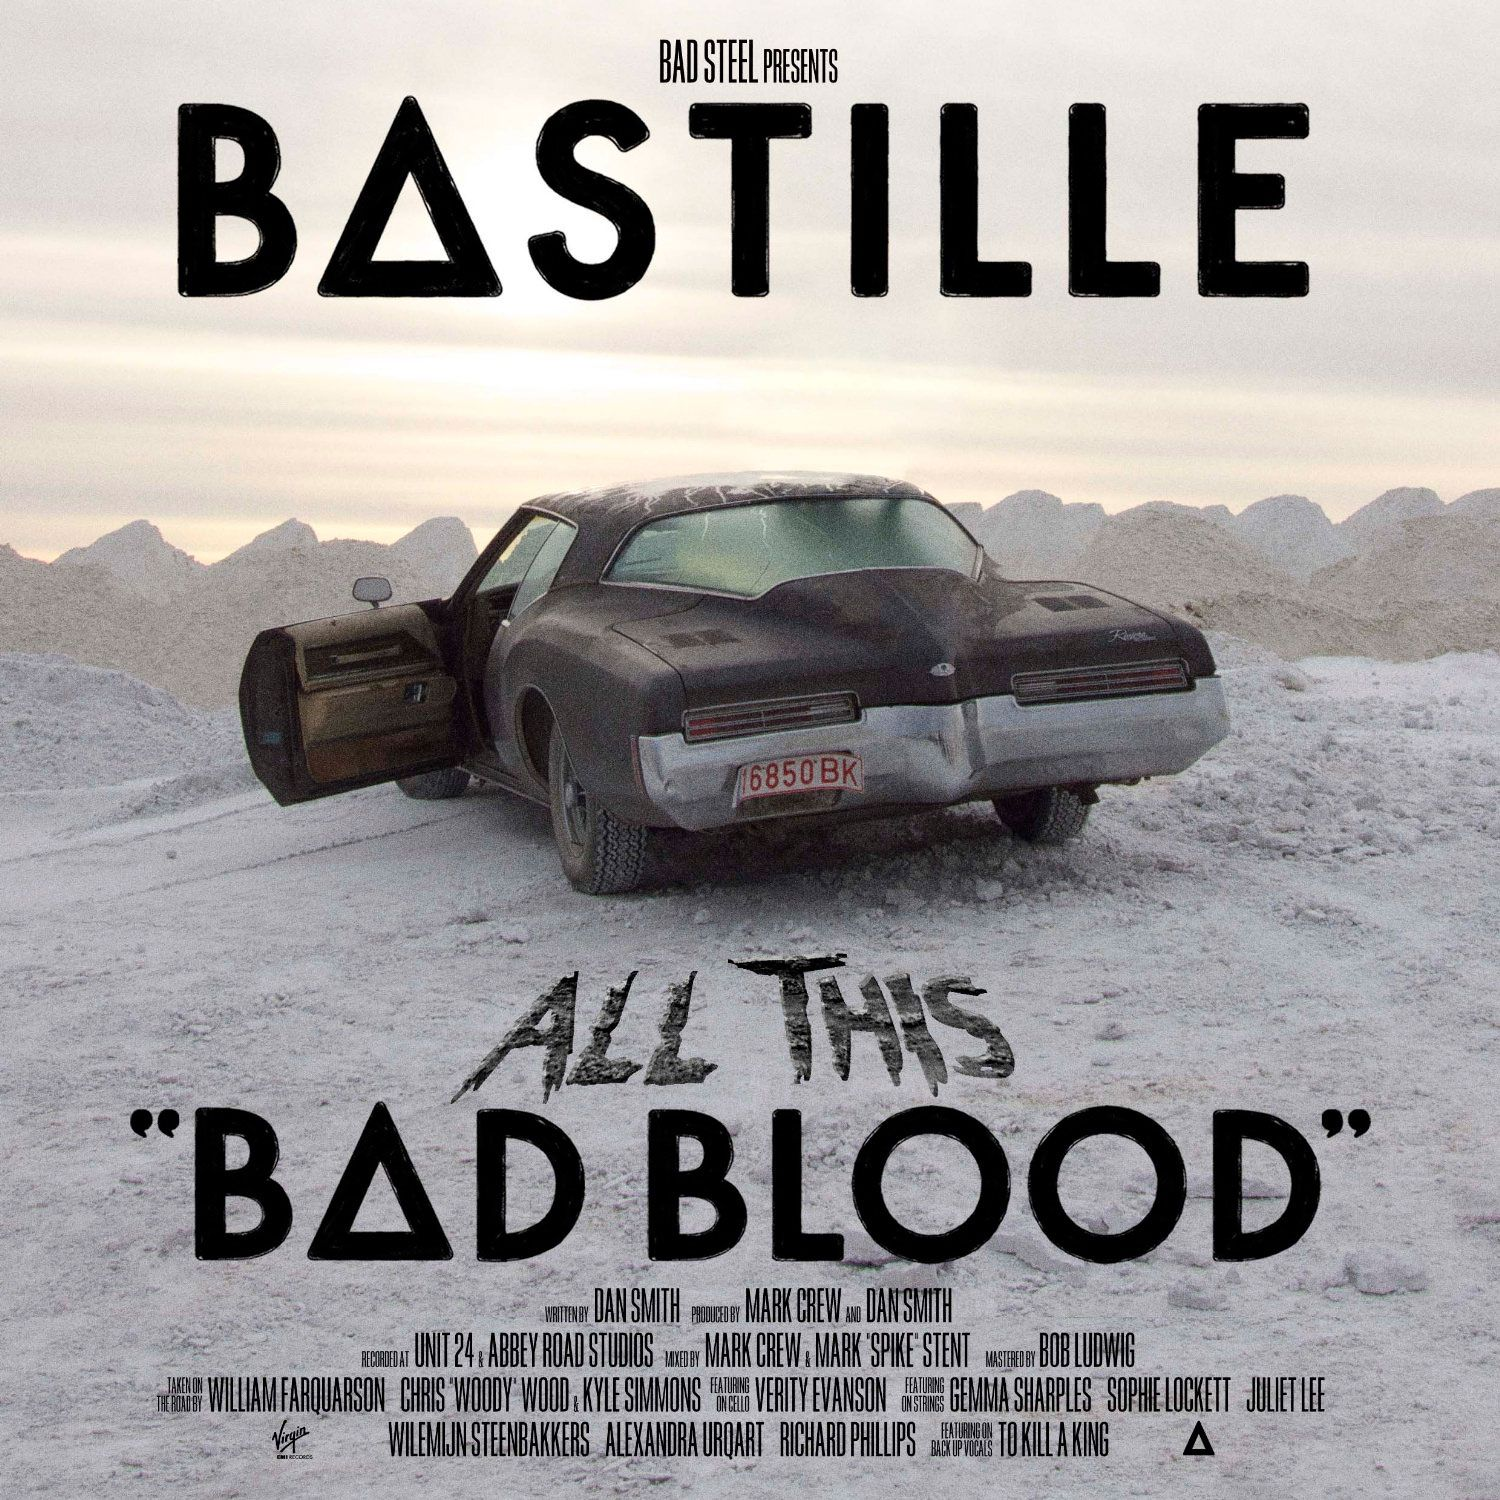 All this bad blood deluxe edition cd2 cover